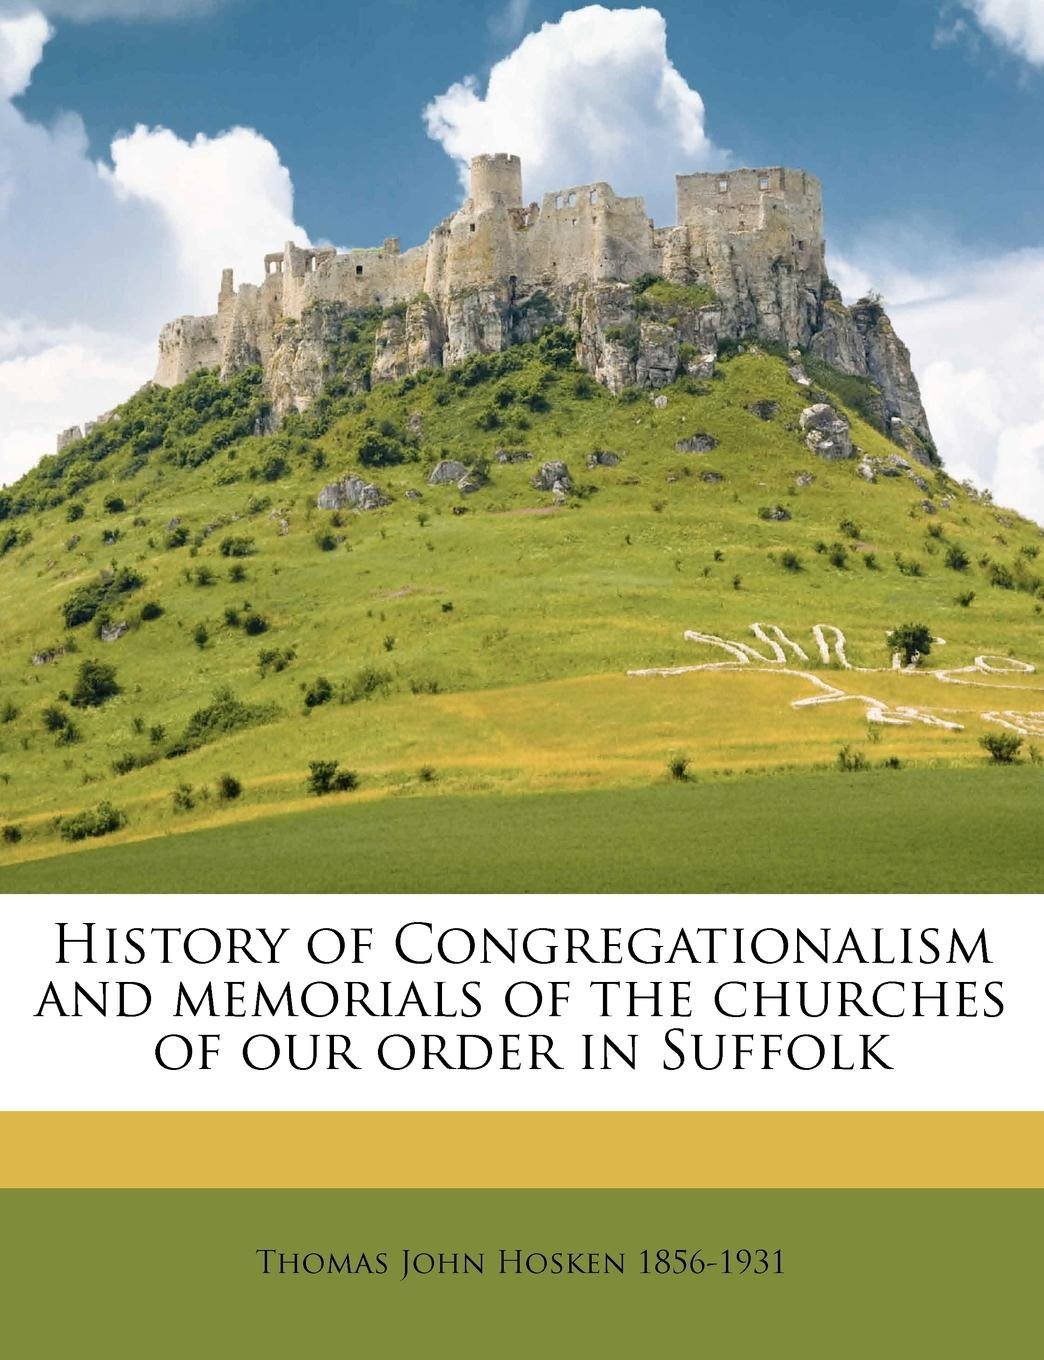 Download History of Congregationalism and memorials of the churches of our order in Suffolk PDF